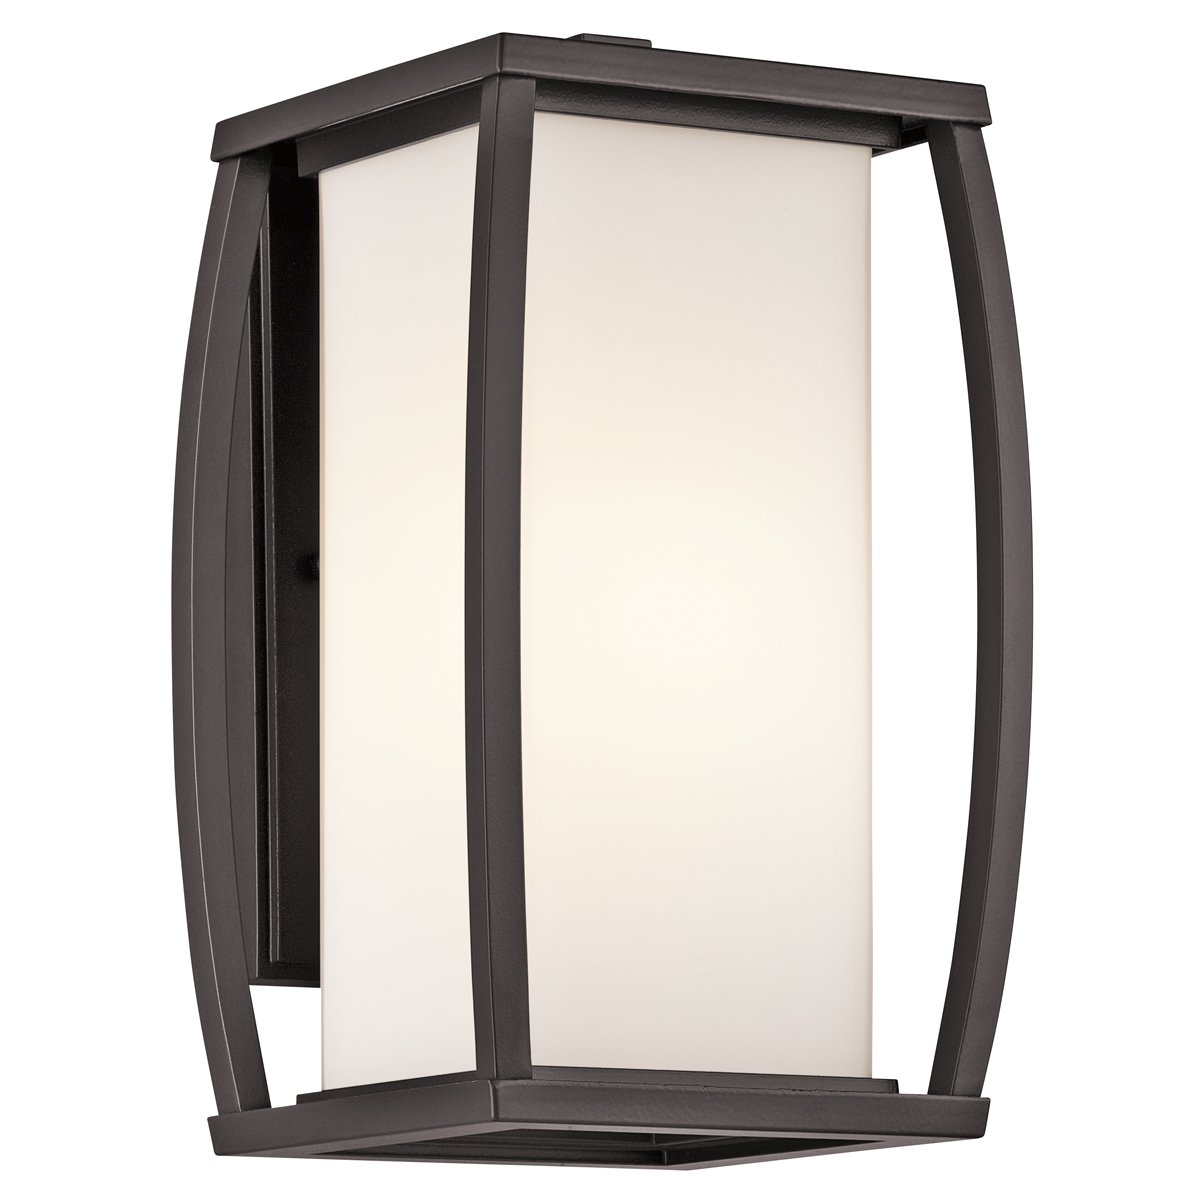 Kichler 49337AZ One Light Outdoor Wall Mount   Wall Porch Lights    Amazon.com